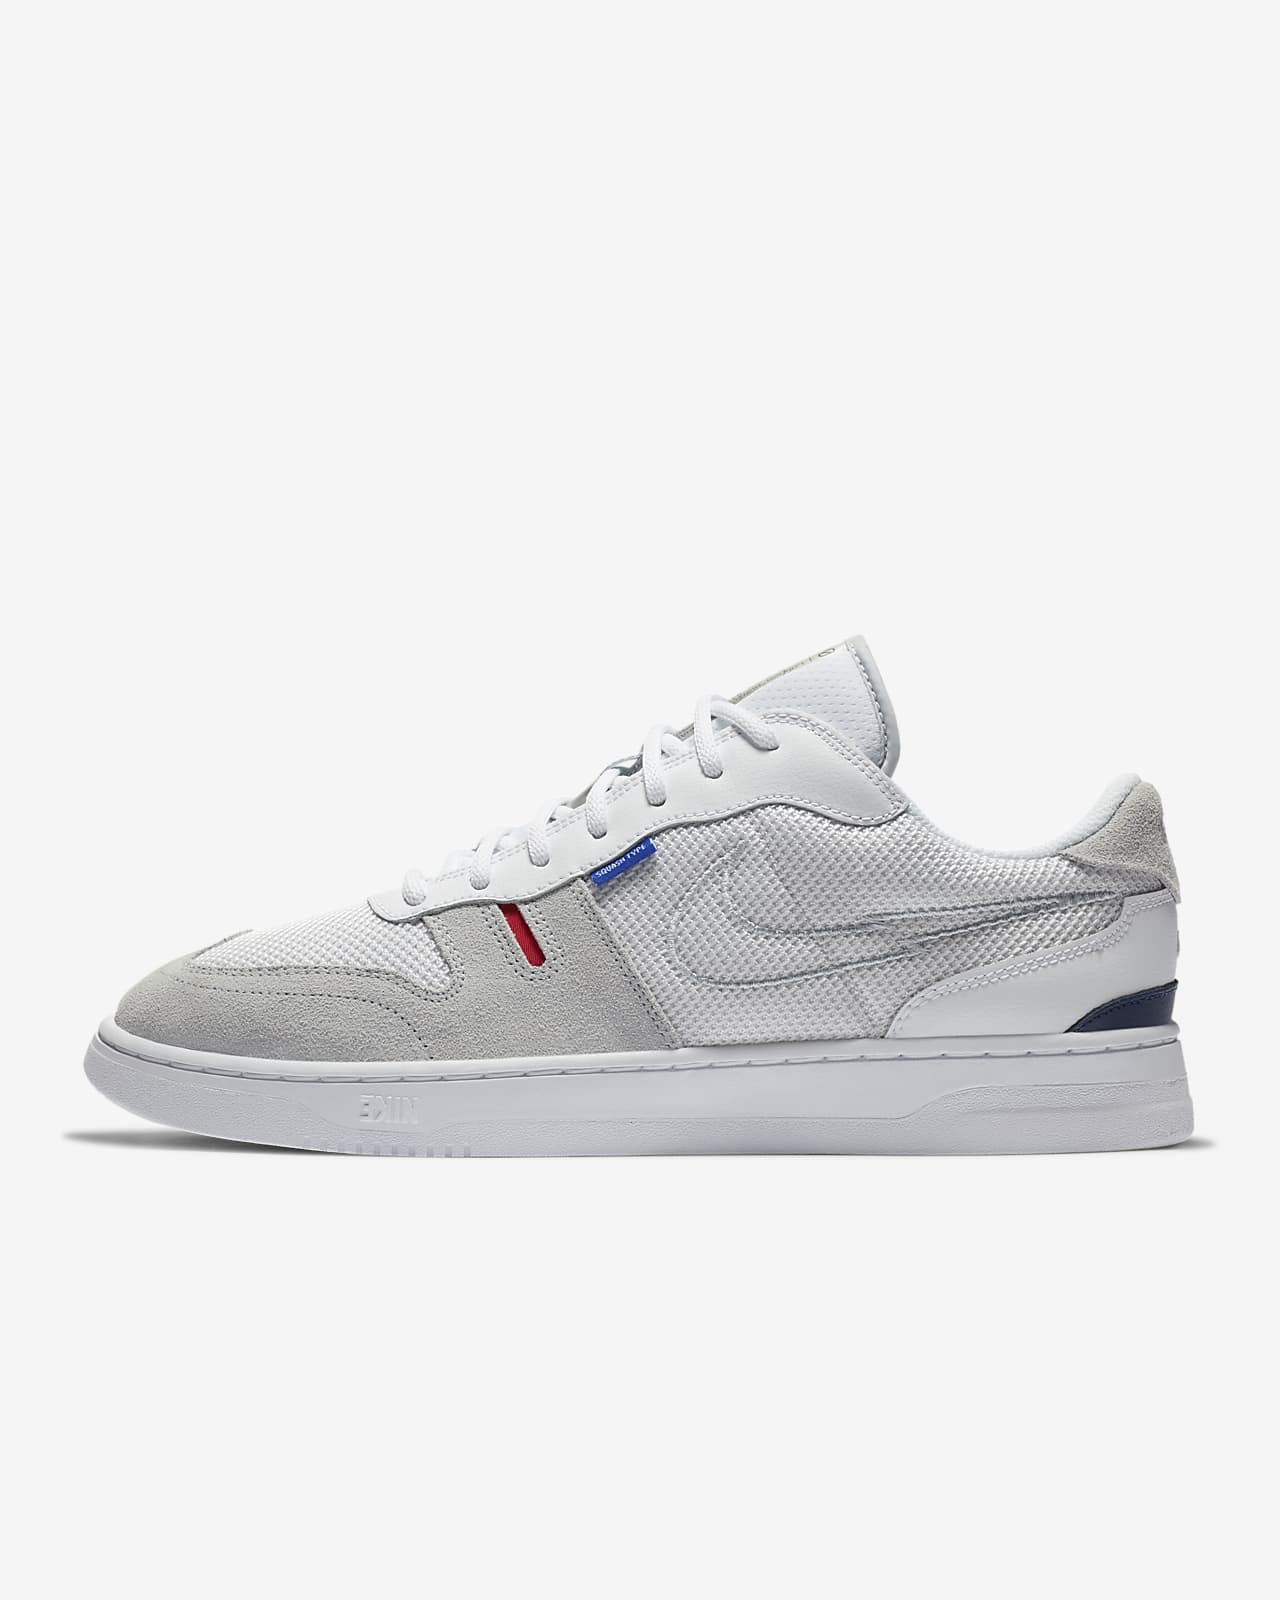 Chaussure Nike Squash-Type pour Homme